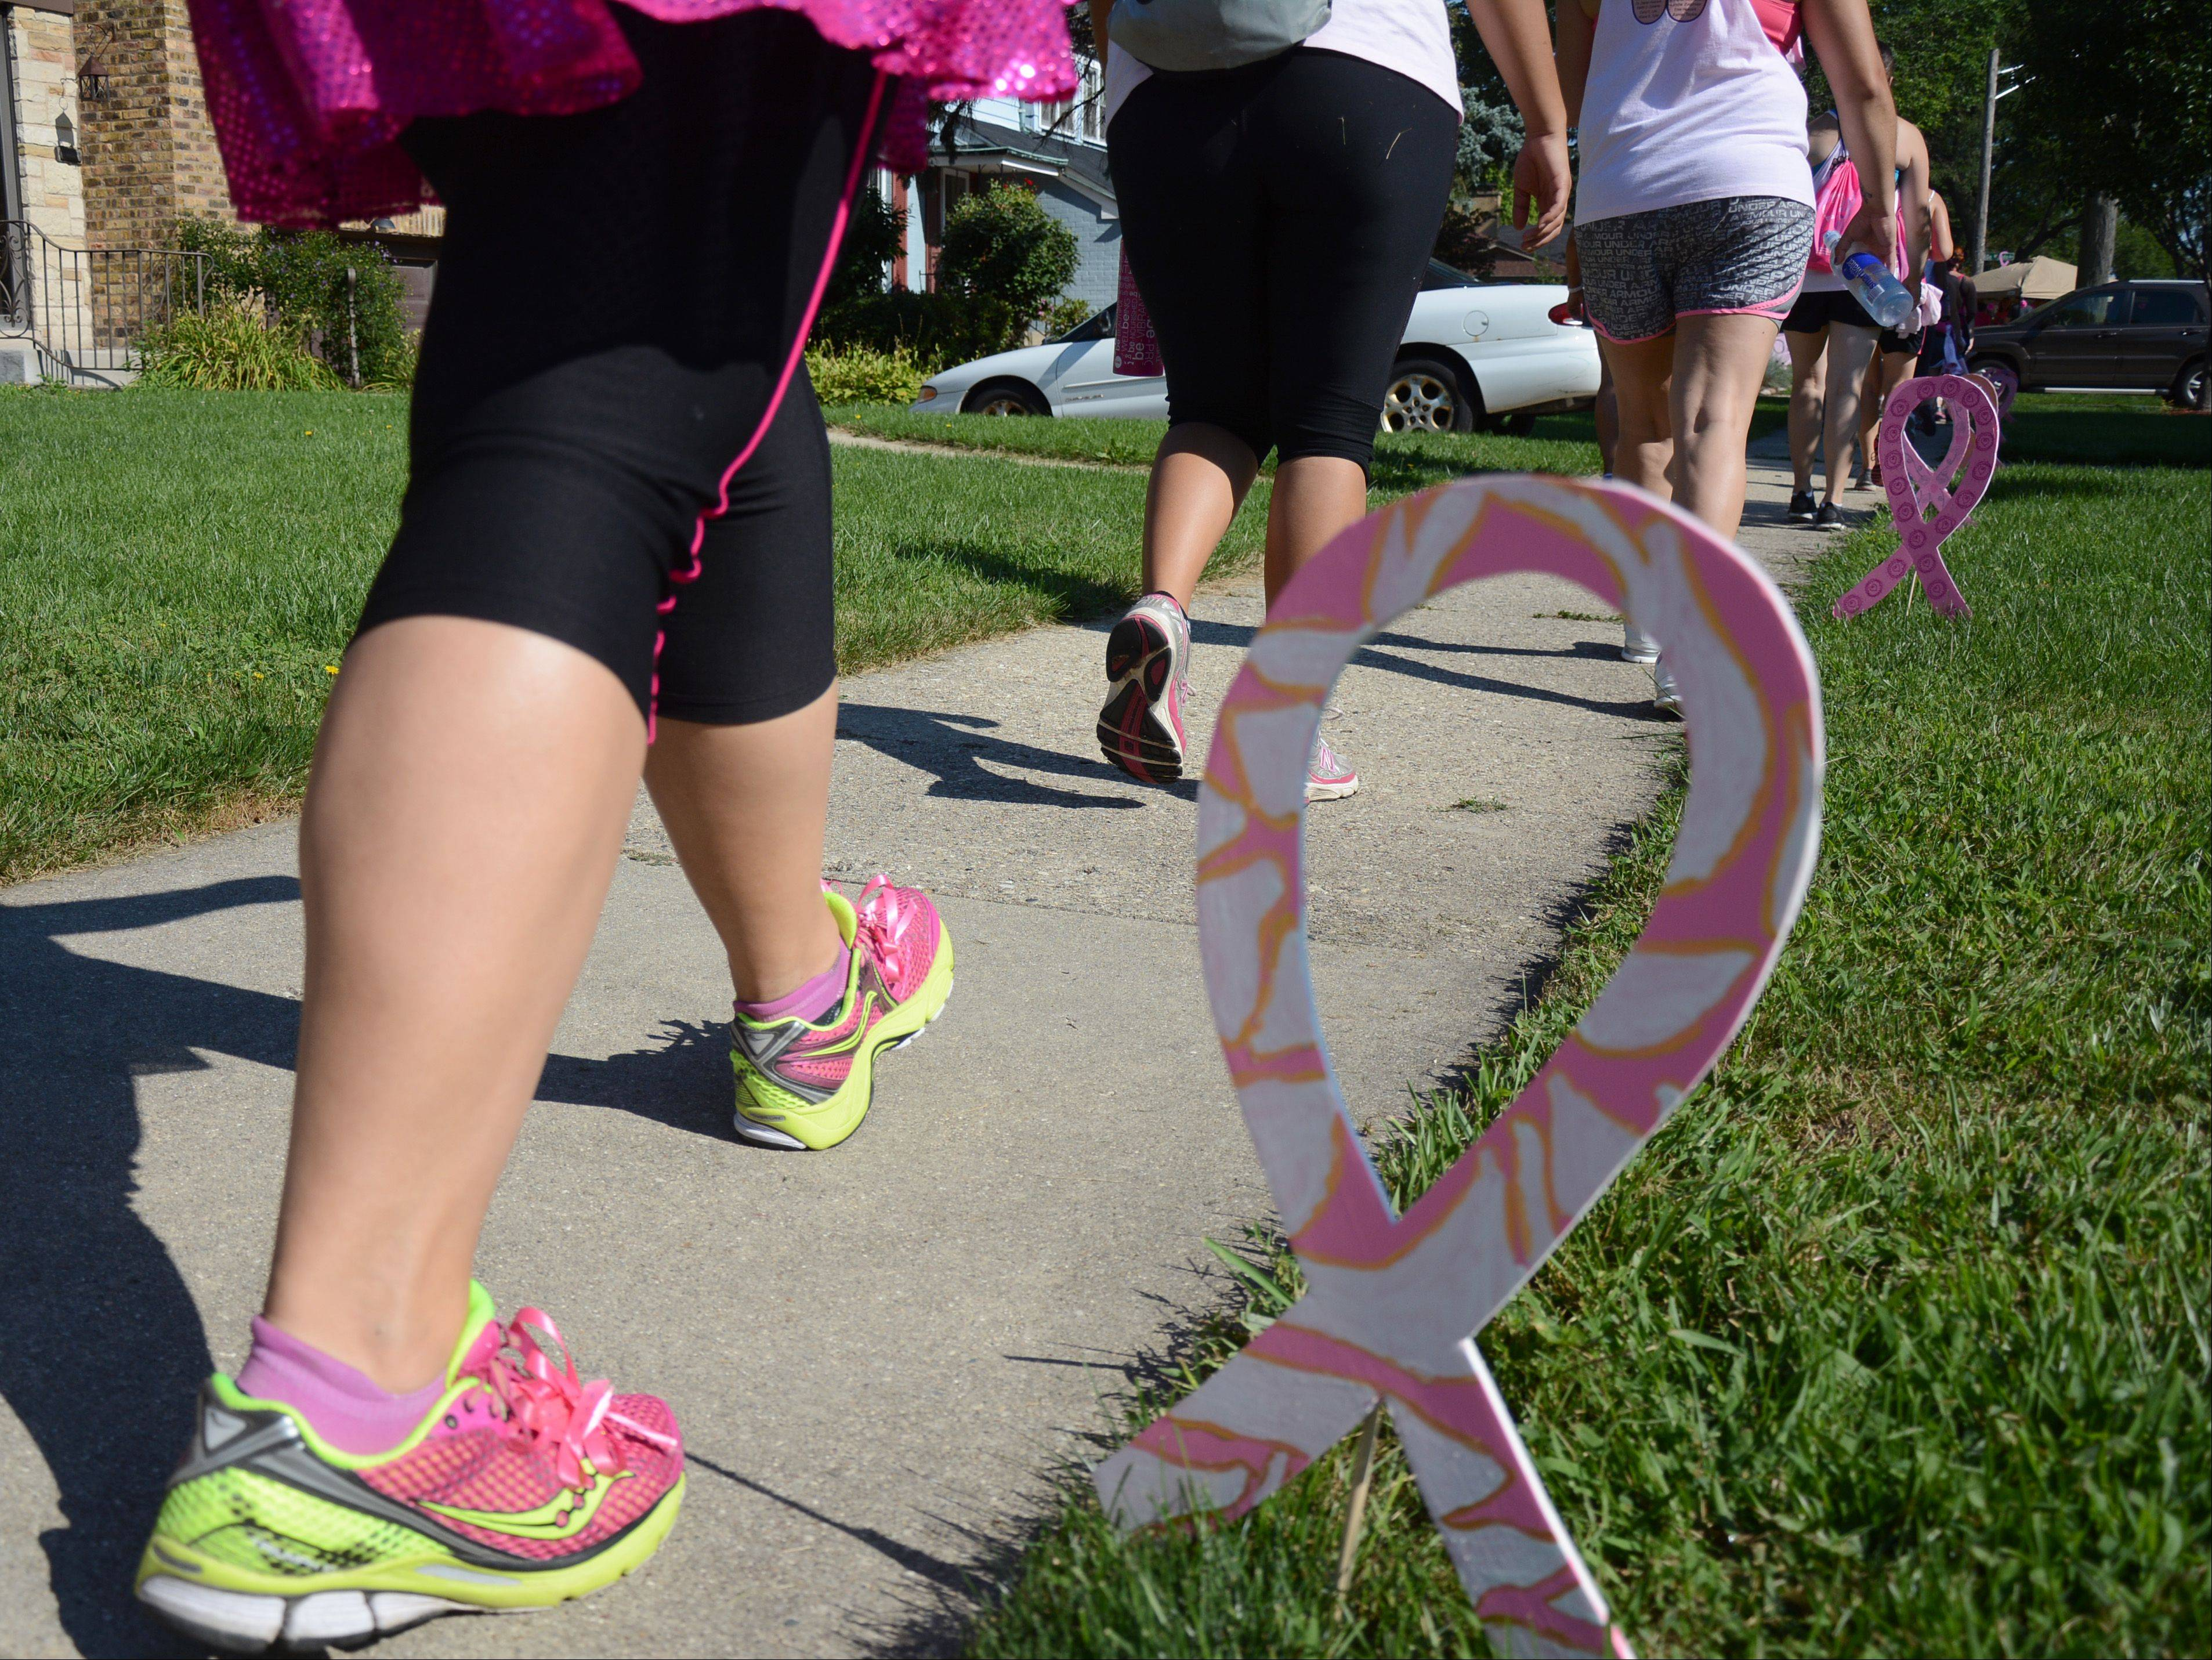 Walkers make their way through Mount Prospect on Saturday during the second day of the Chicago Breast Cancer Komen 3-Day Walk.